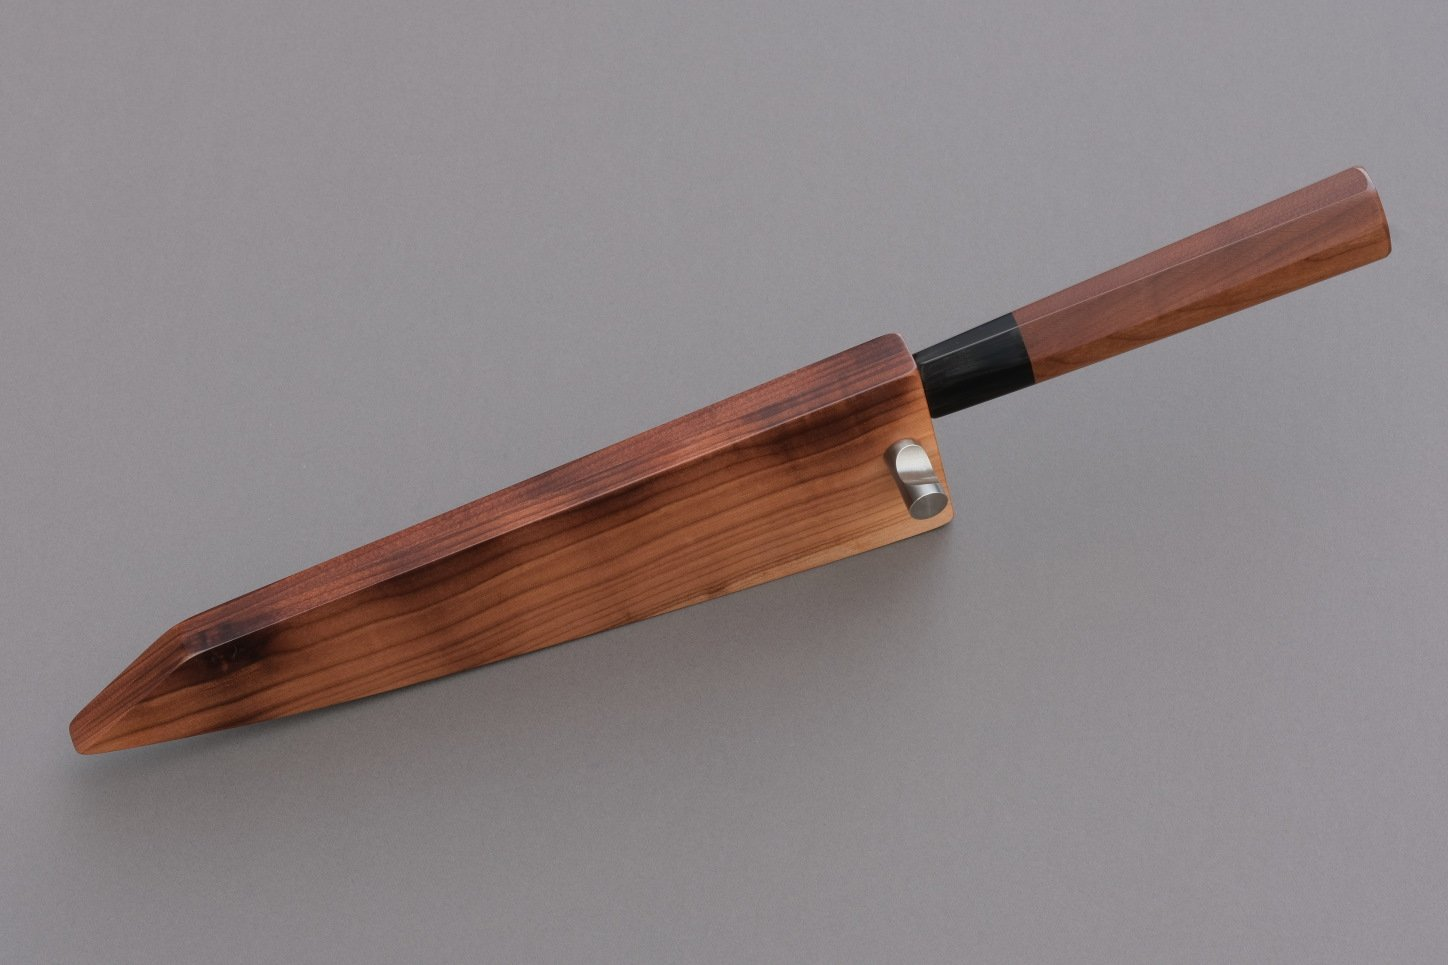 Excalibur knife from Guldimann with a handle and sheath from Bijouwood cherry